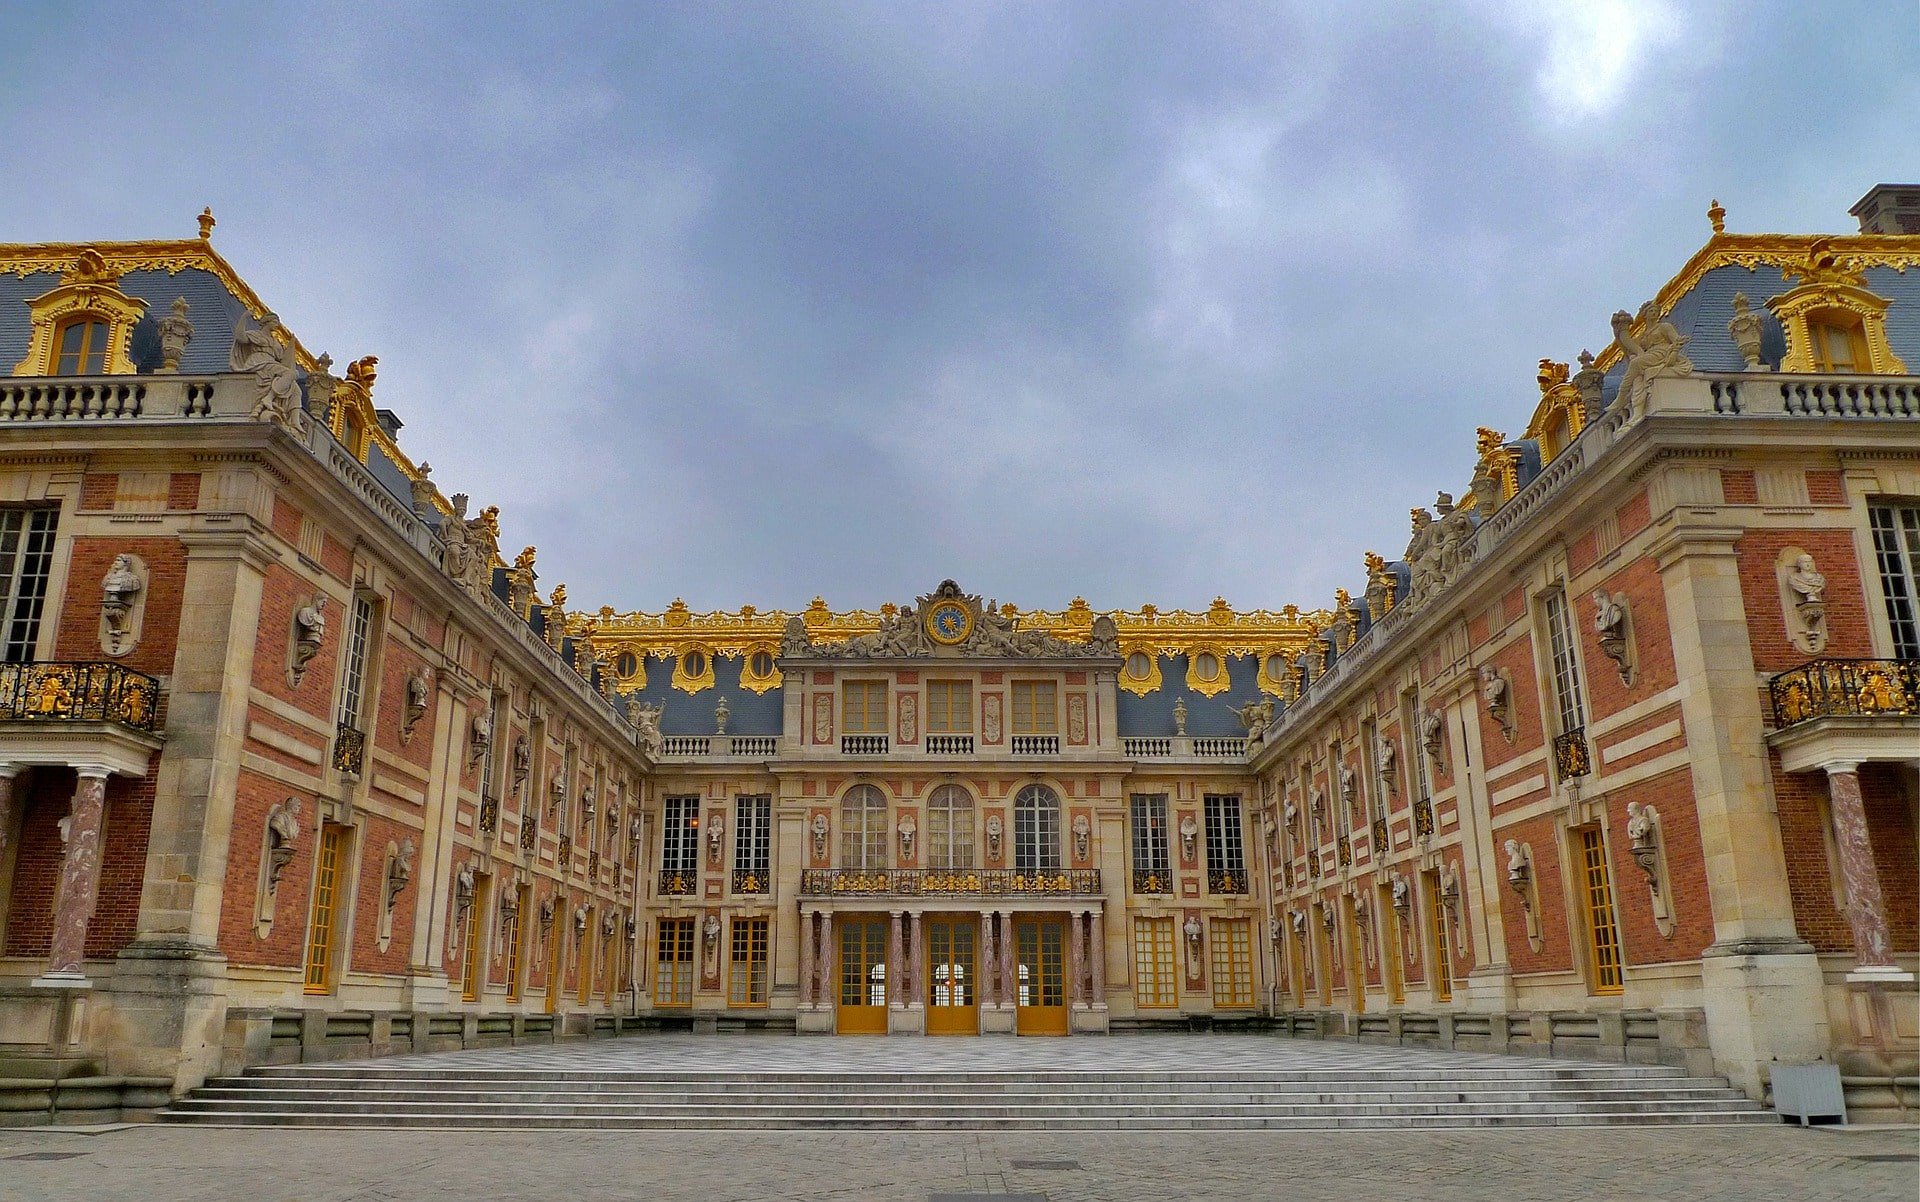 Visiting Versailles is an excellent thing to do in France